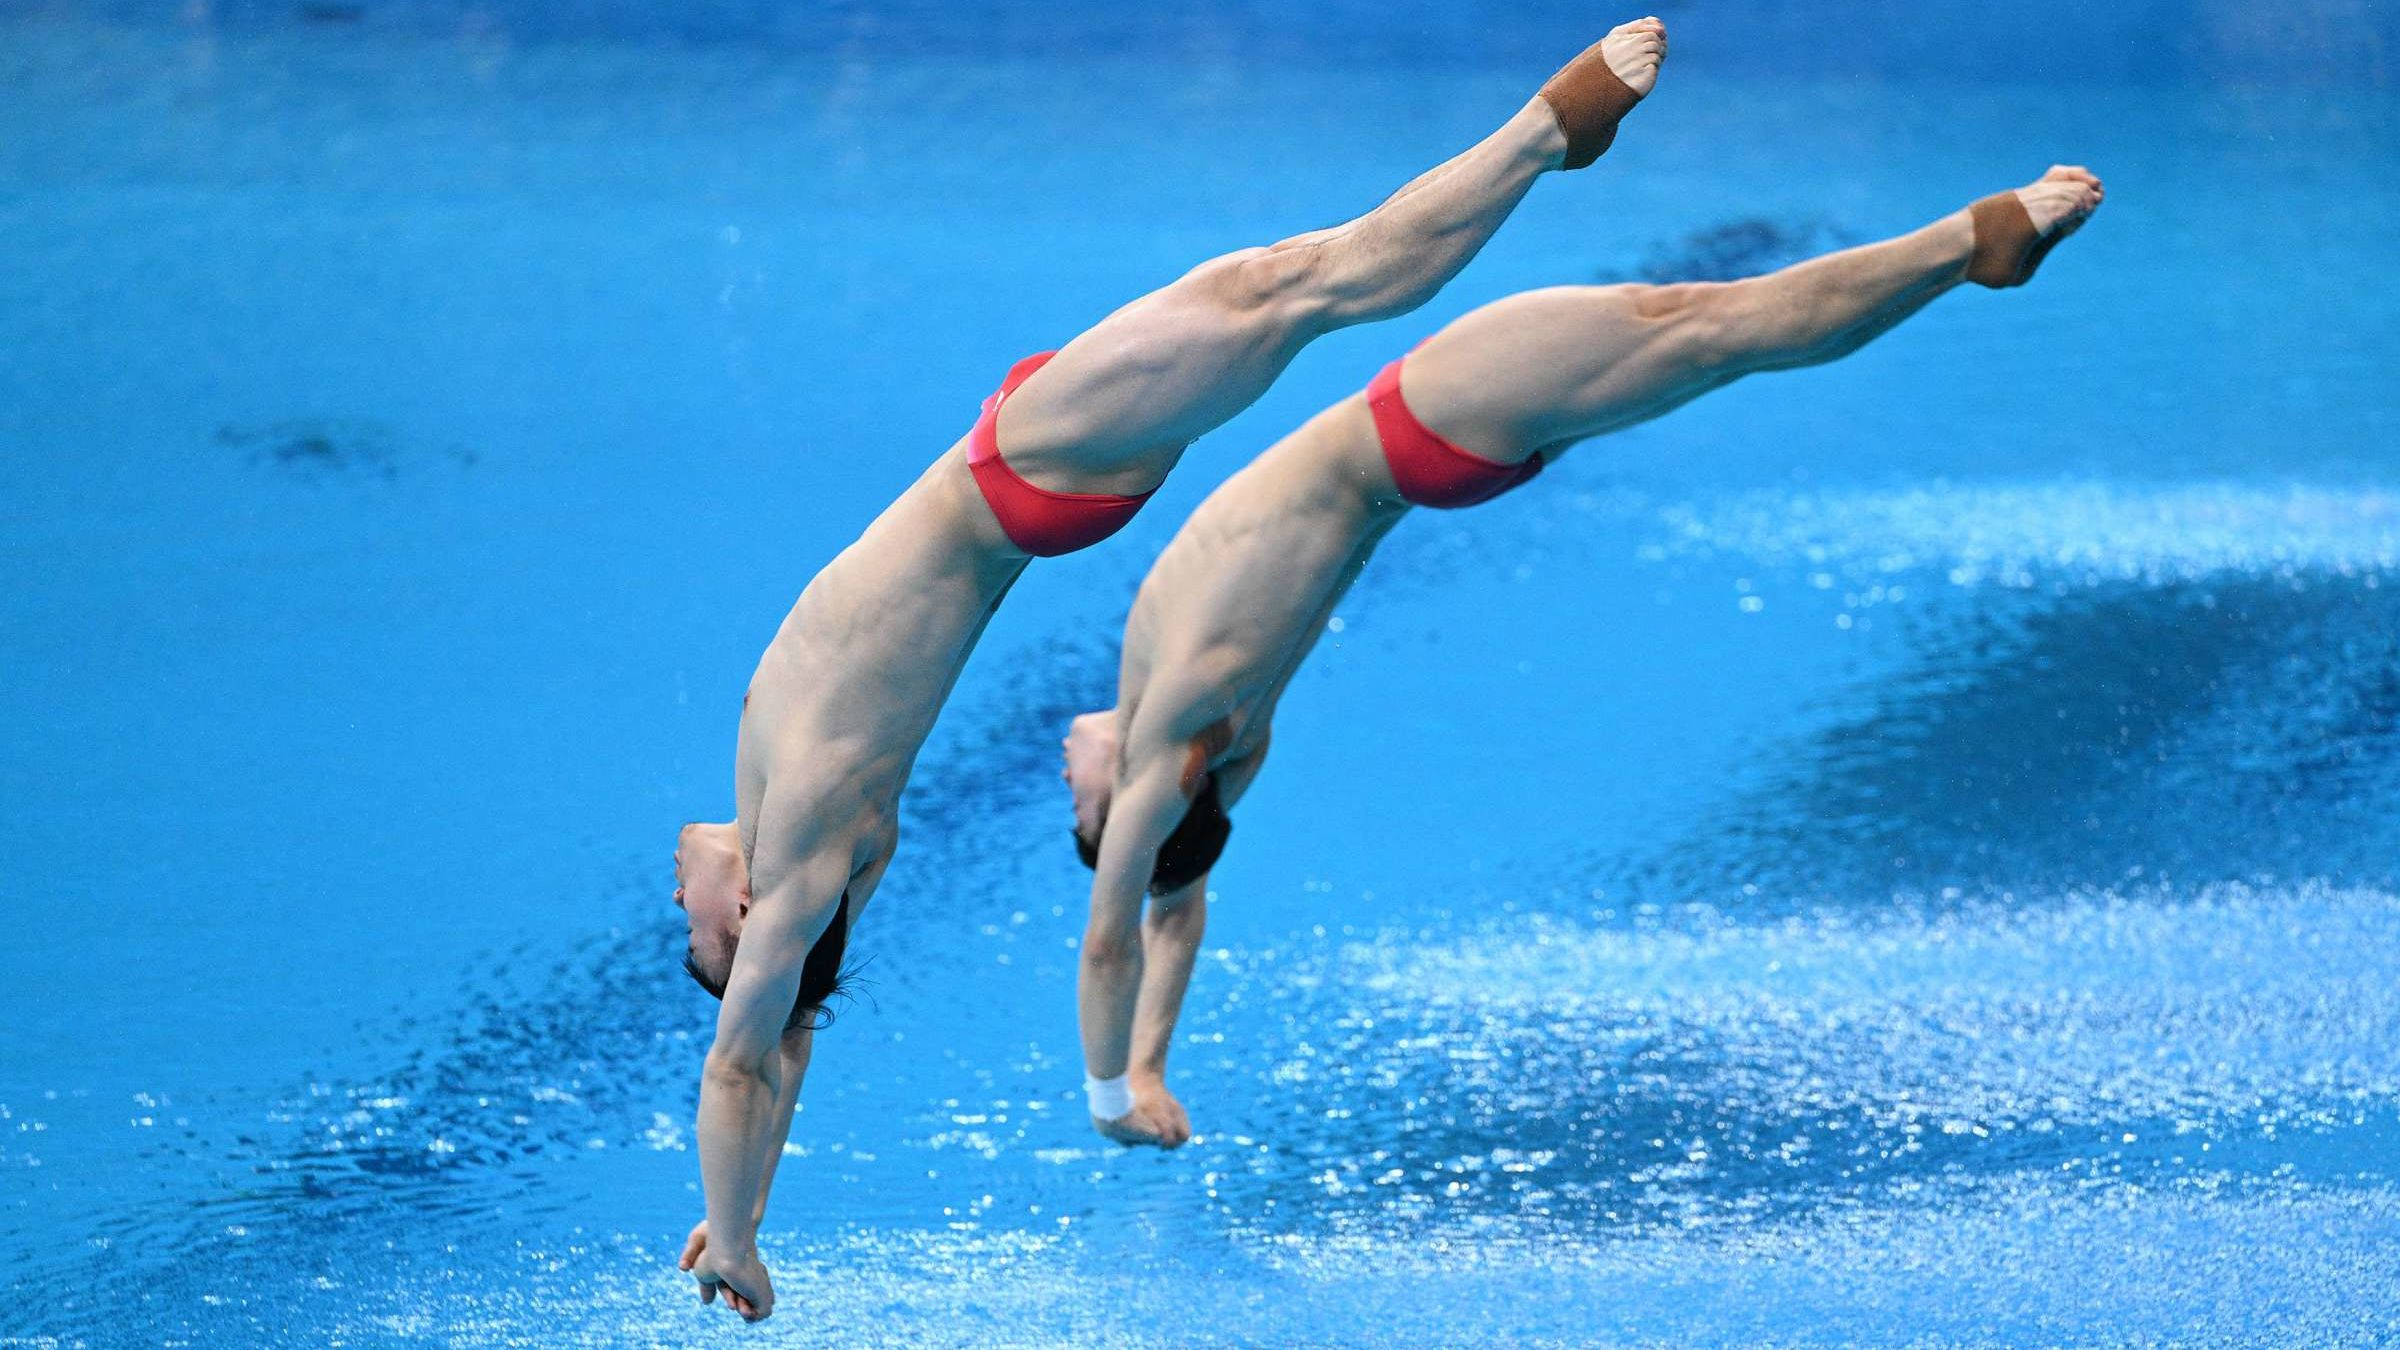 Why Do They Spray Water in the Olympic Diving Pool Between Dives?